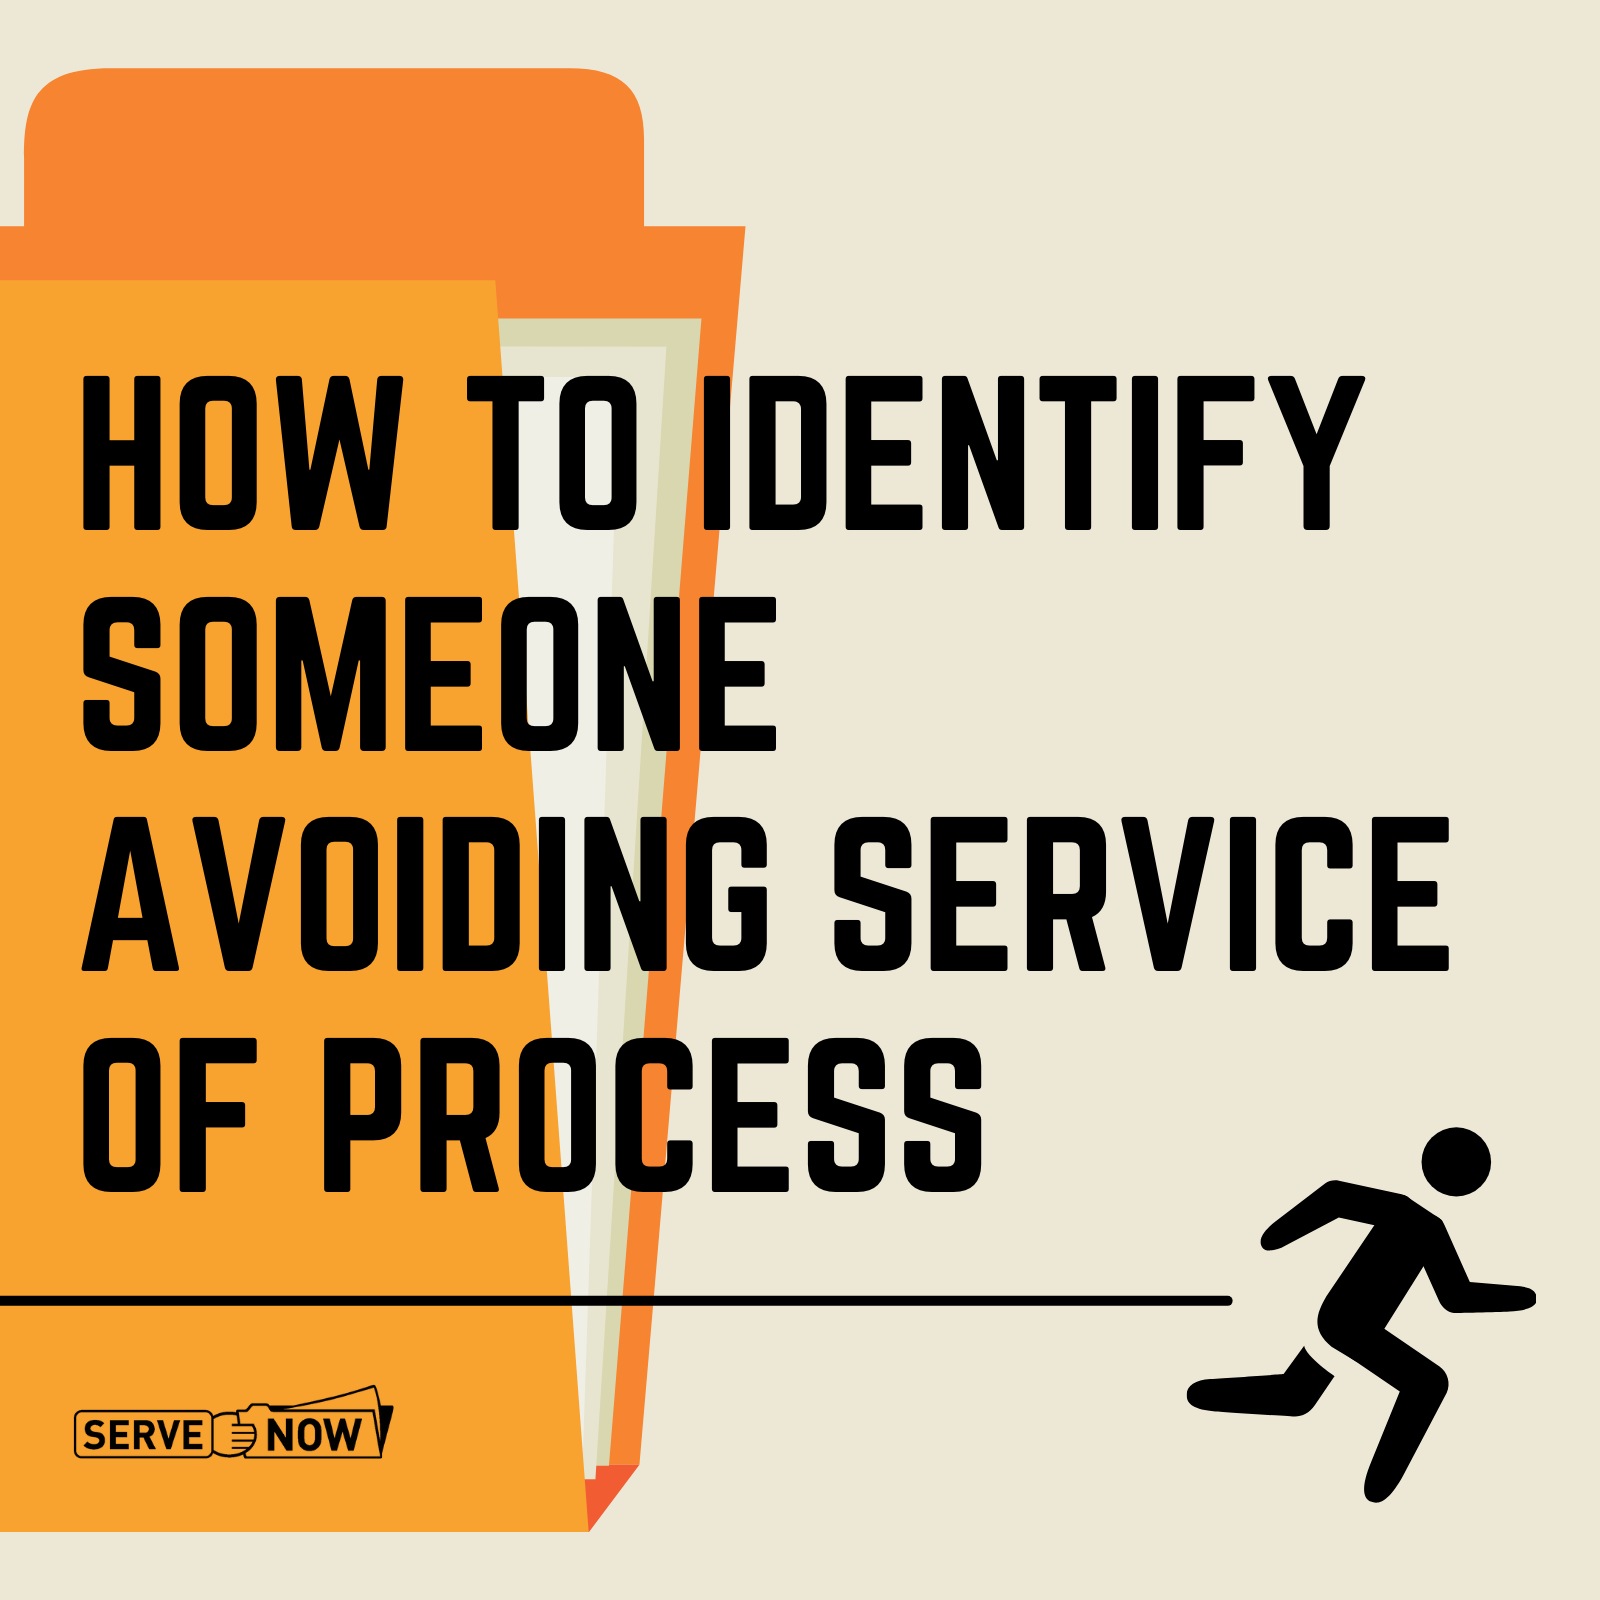 How To Identify Someone Avoiding Service of Process